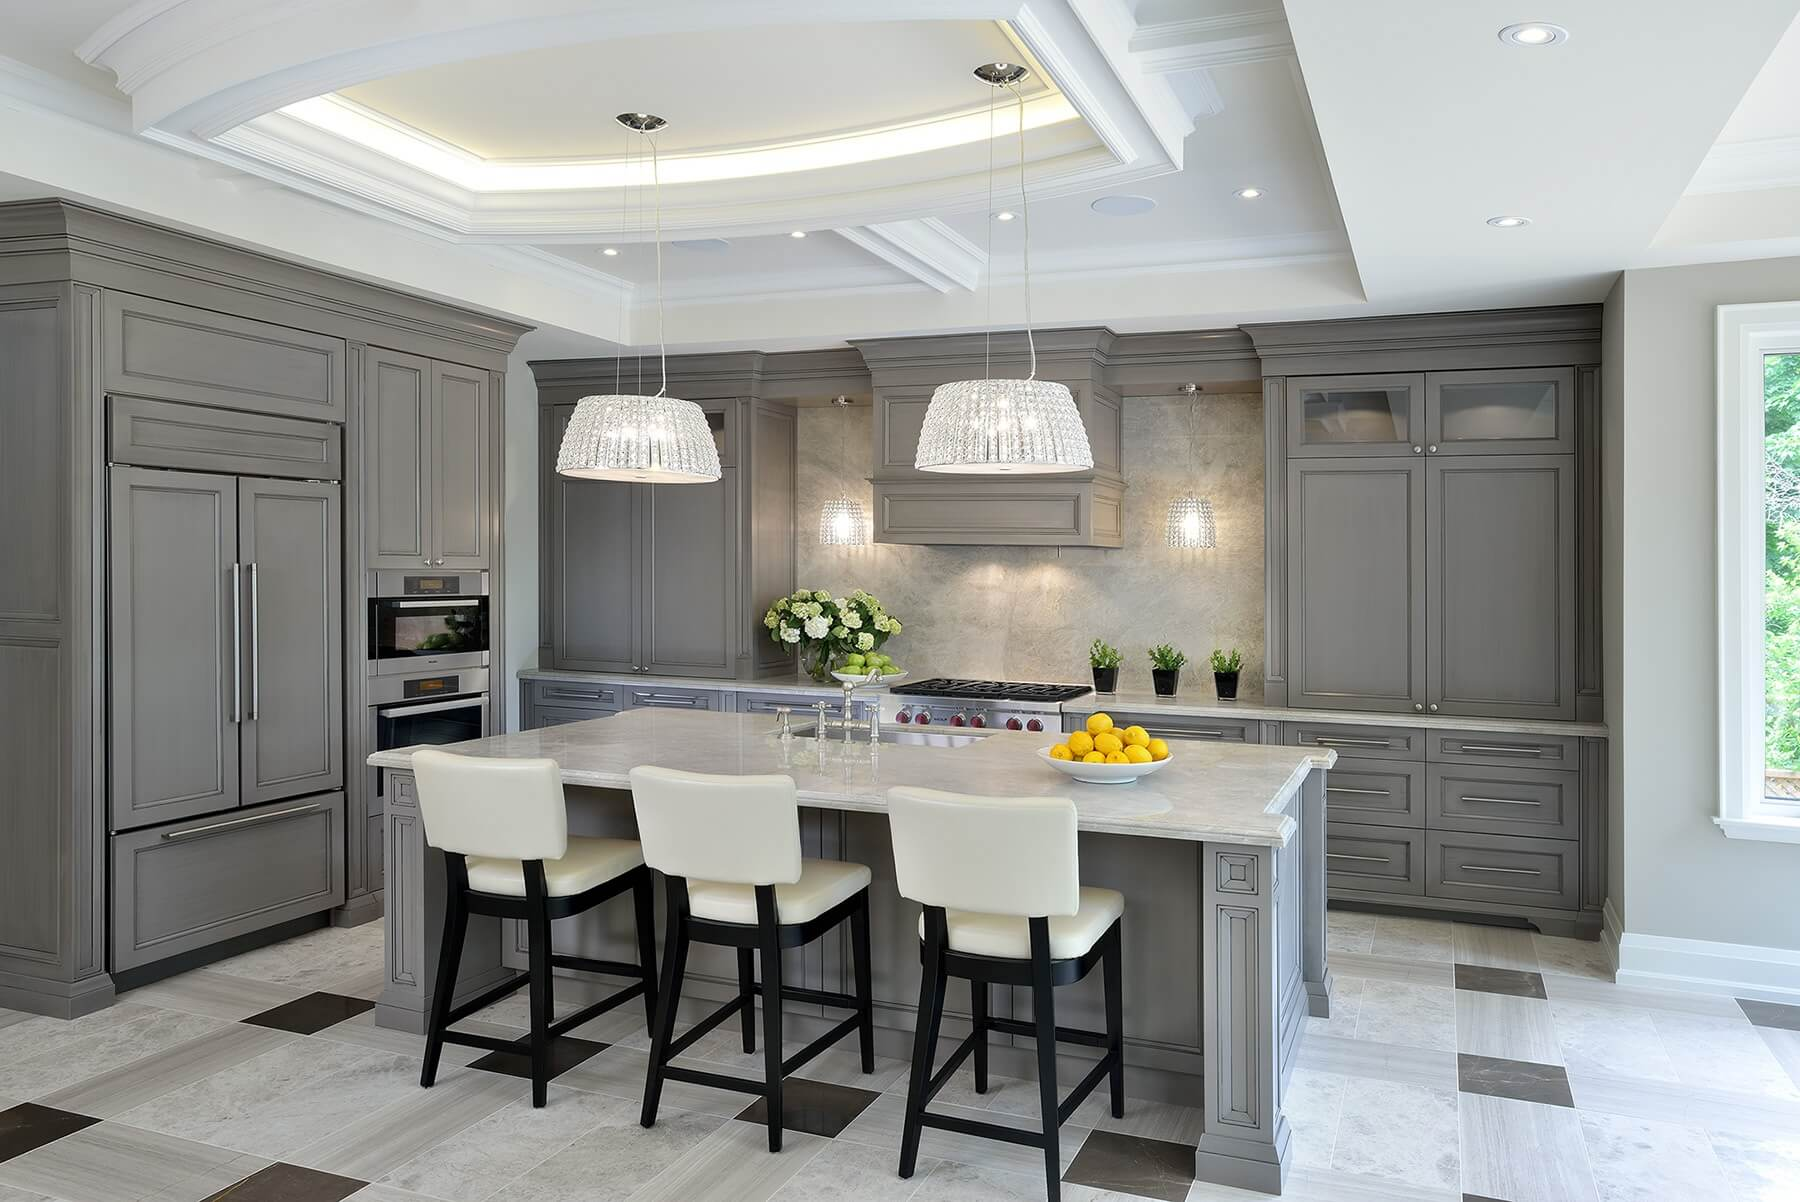 Large kitchen island features a polished quartzite countertop over custom grey cabinetry. Full height backsplash, seen behind crystalline chandeliers, is quartzite as well.